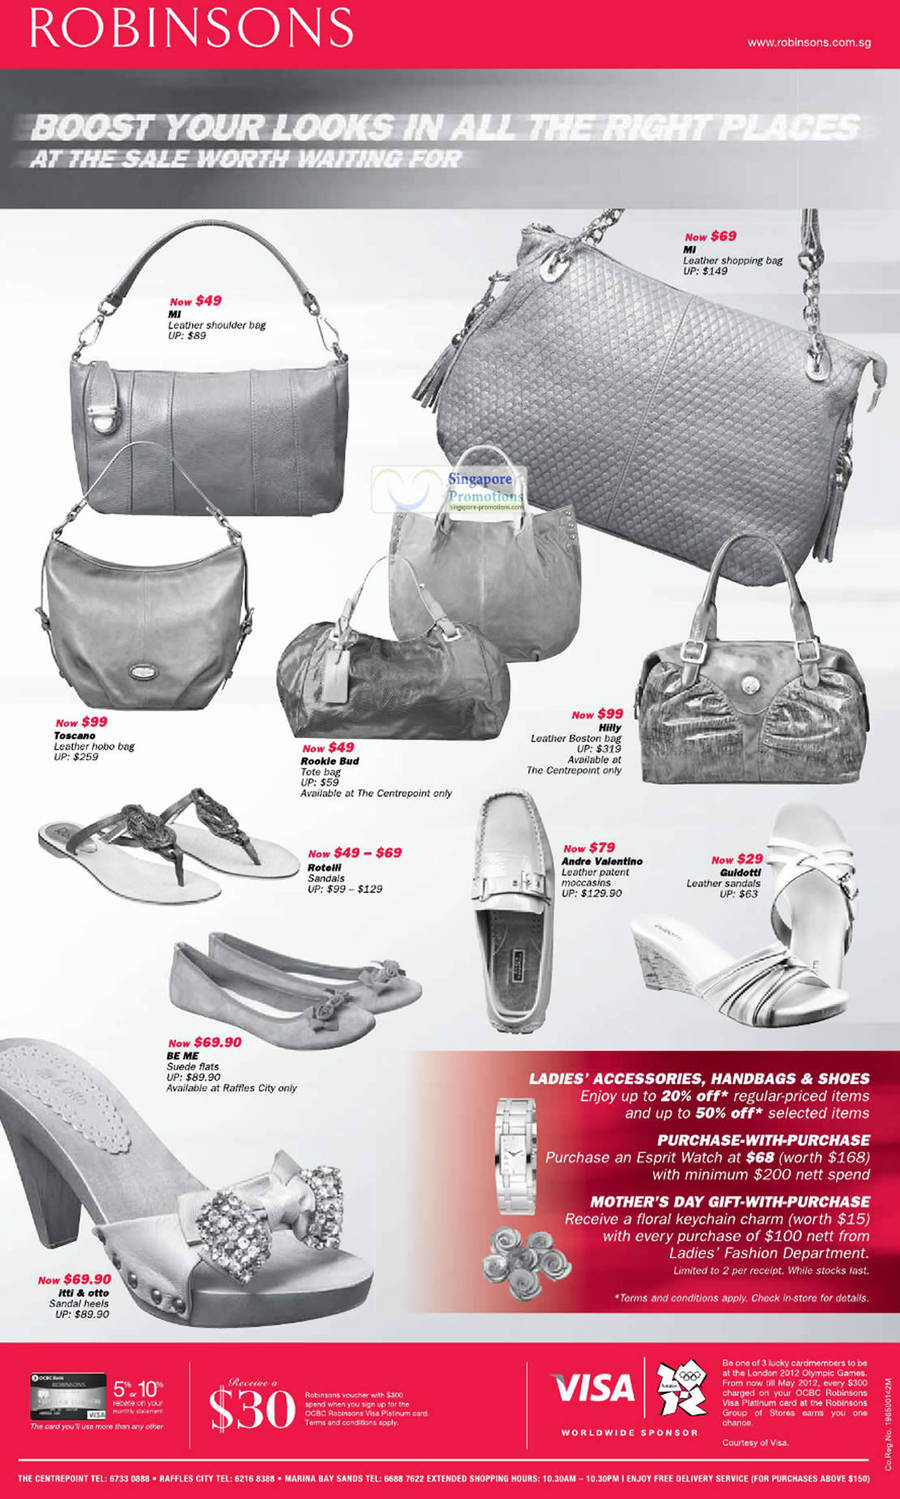 MI Leather Shopping Bag, Hilly Leather Boston Bag, Toscano Leather Hobo Bag, Be Me Suede Flats and Itti & Otto Sandal Heels